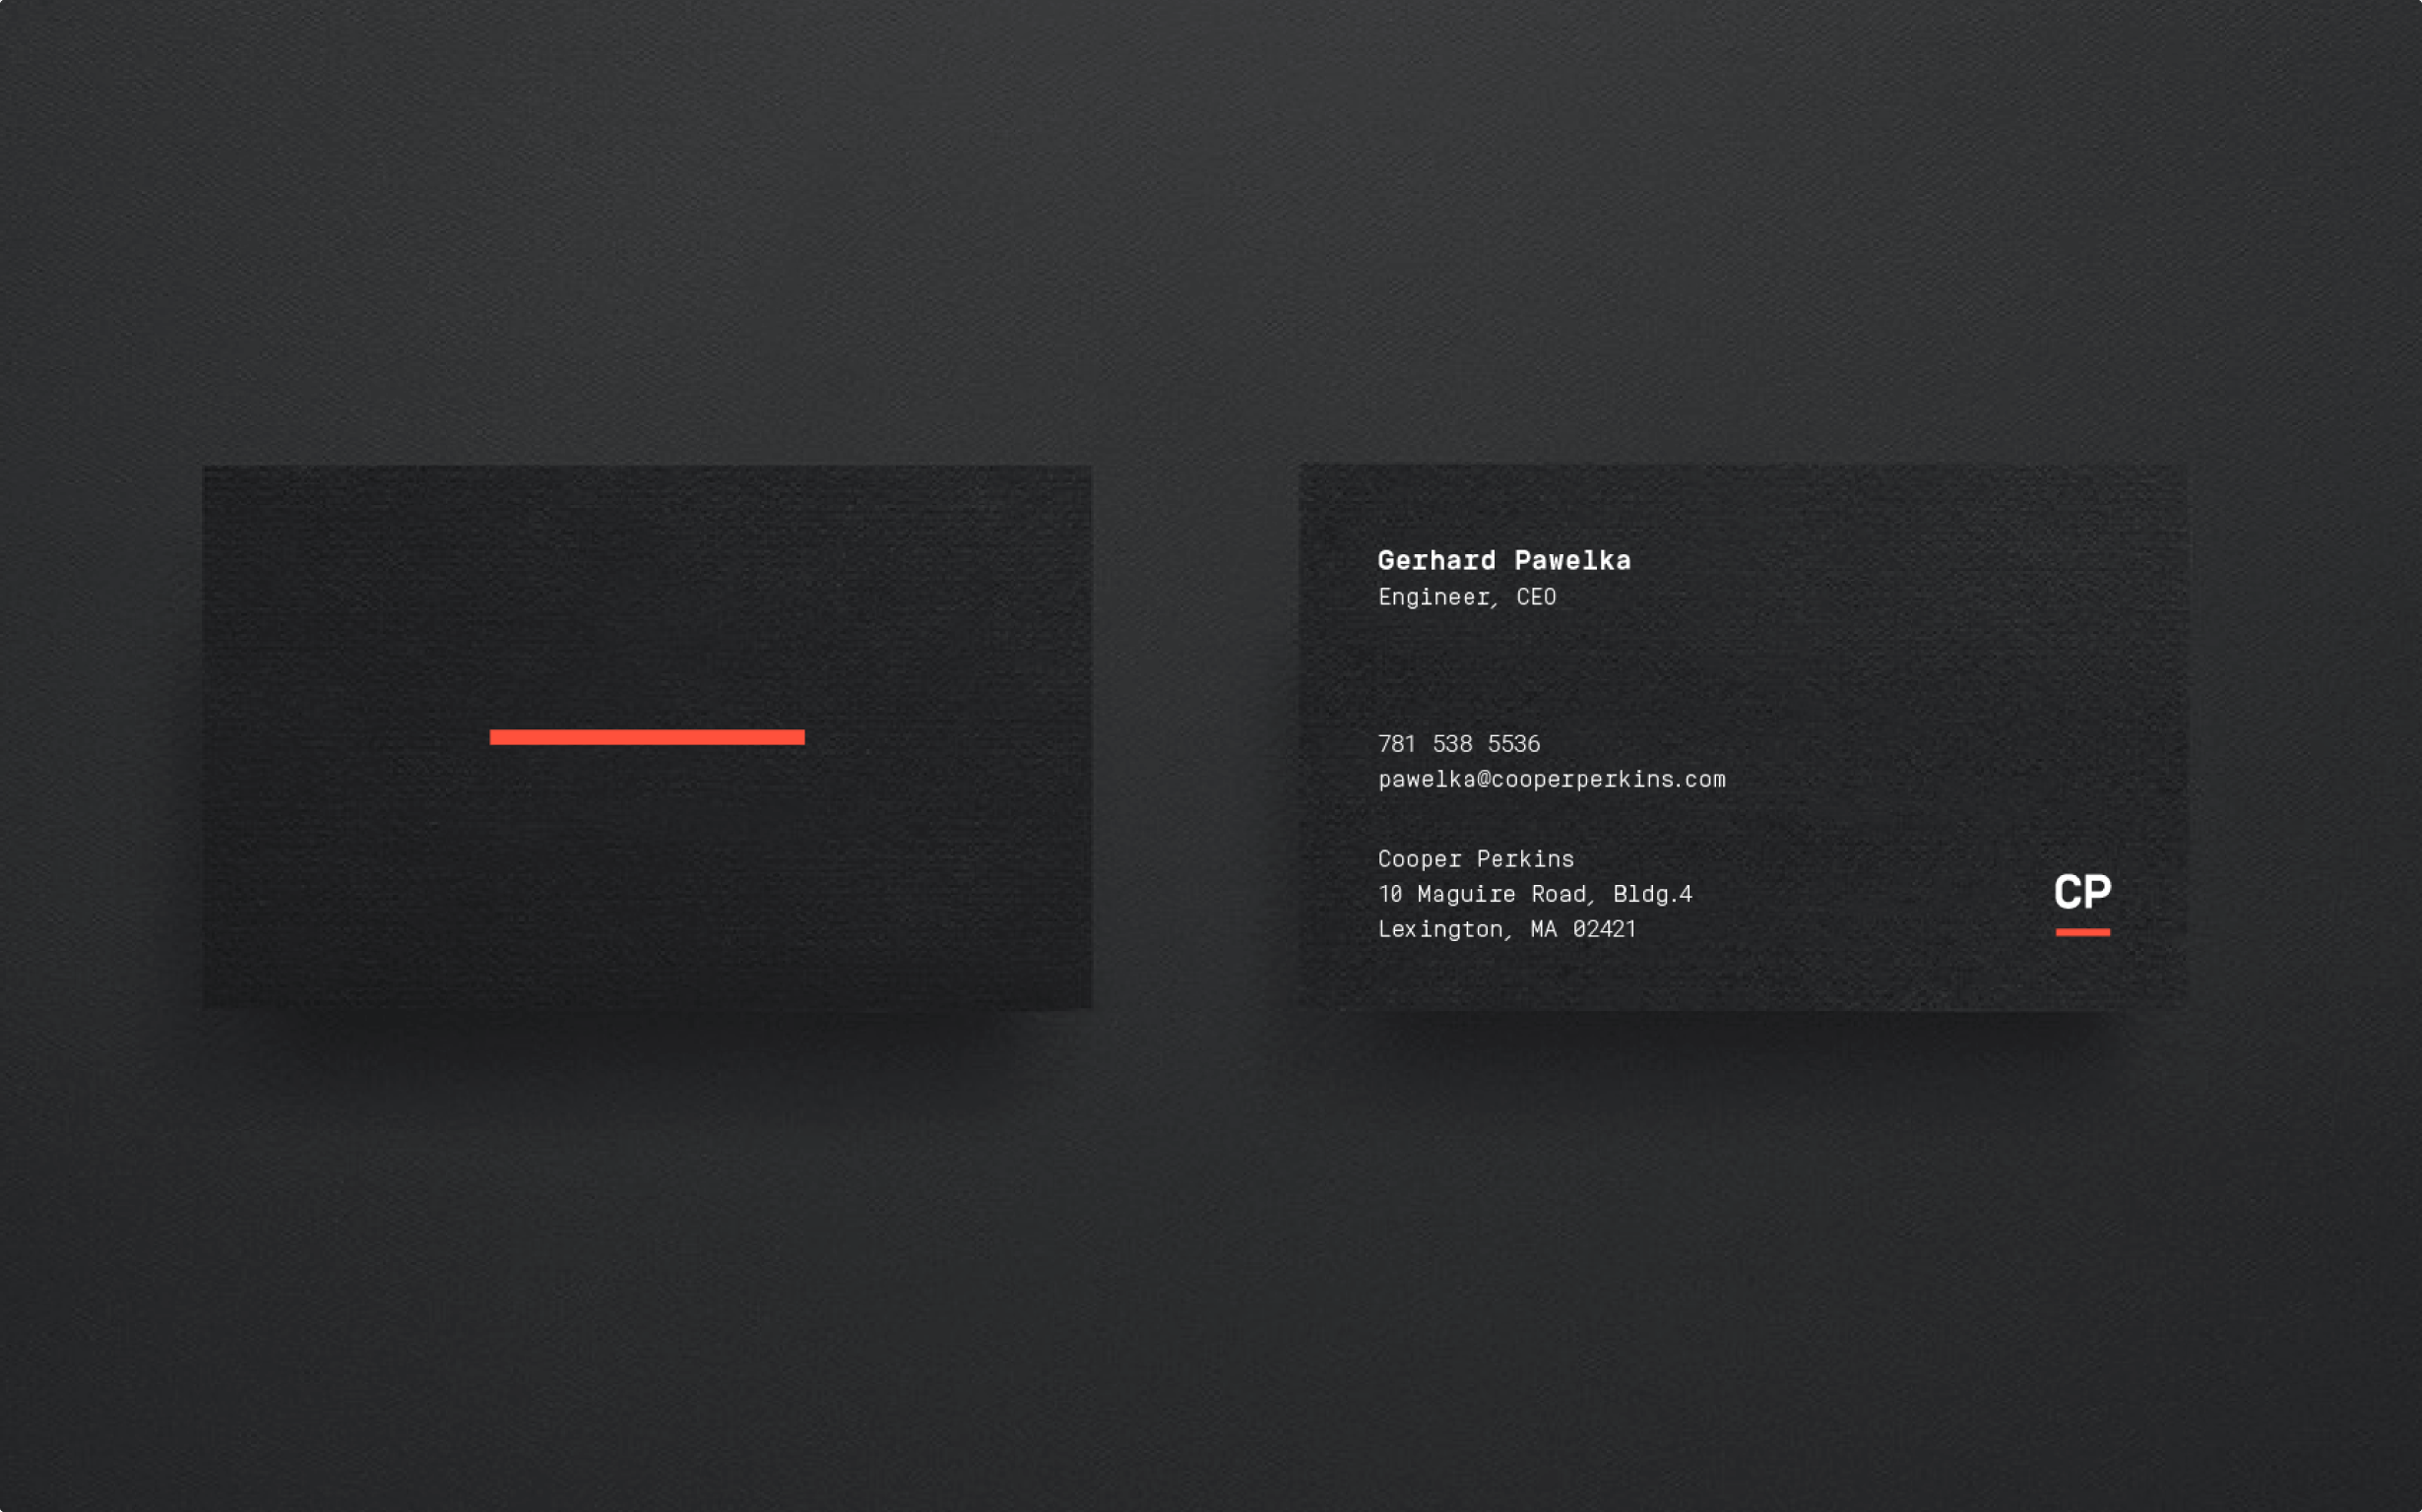 The front and back of Cooper Perkins' business cards, featuring the bold line and typewriter font.